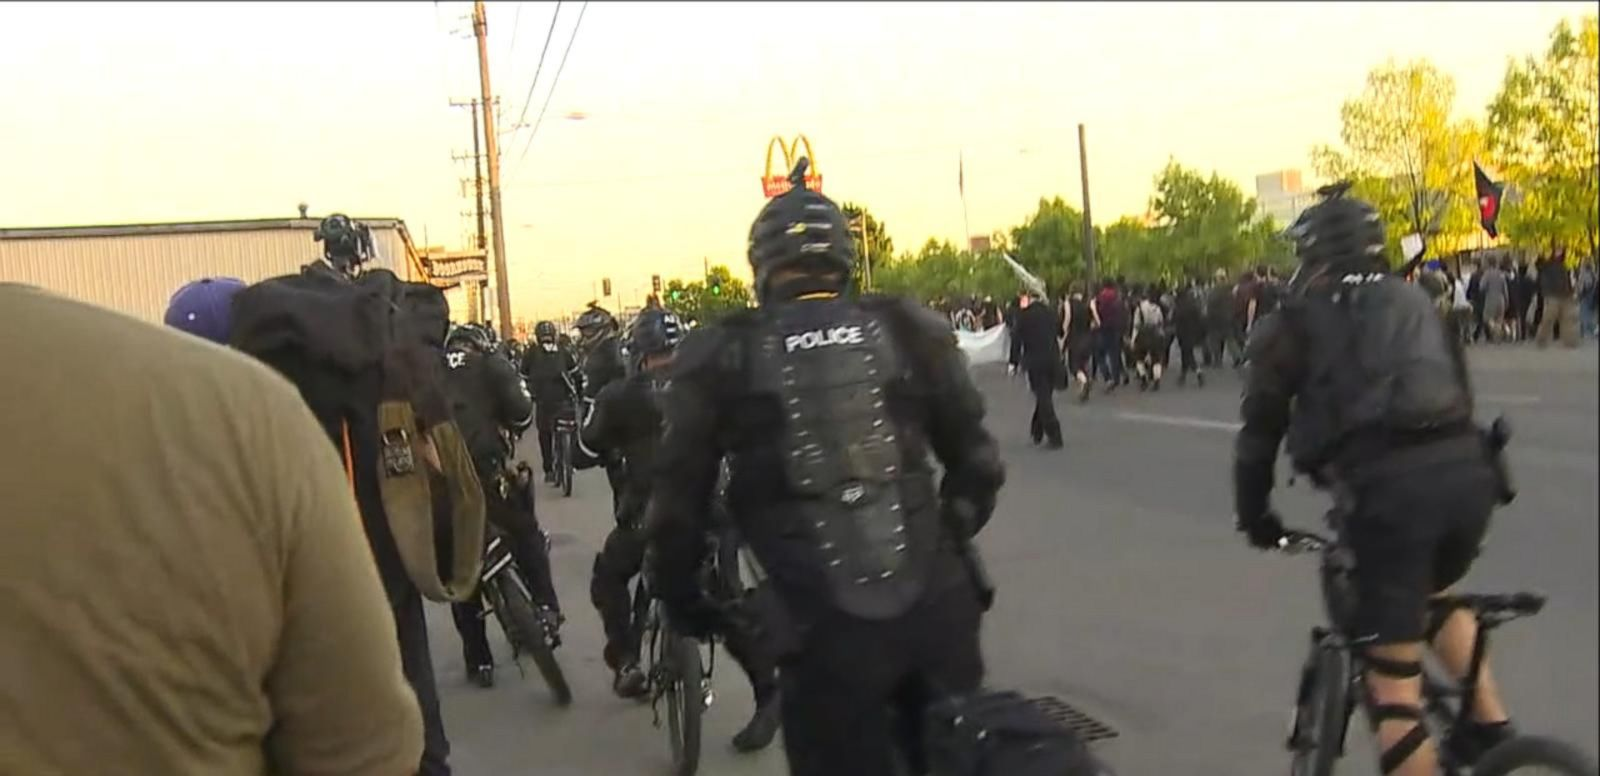 VIDEO: Arrests in Seattle as May Day Marchers Take to Streets